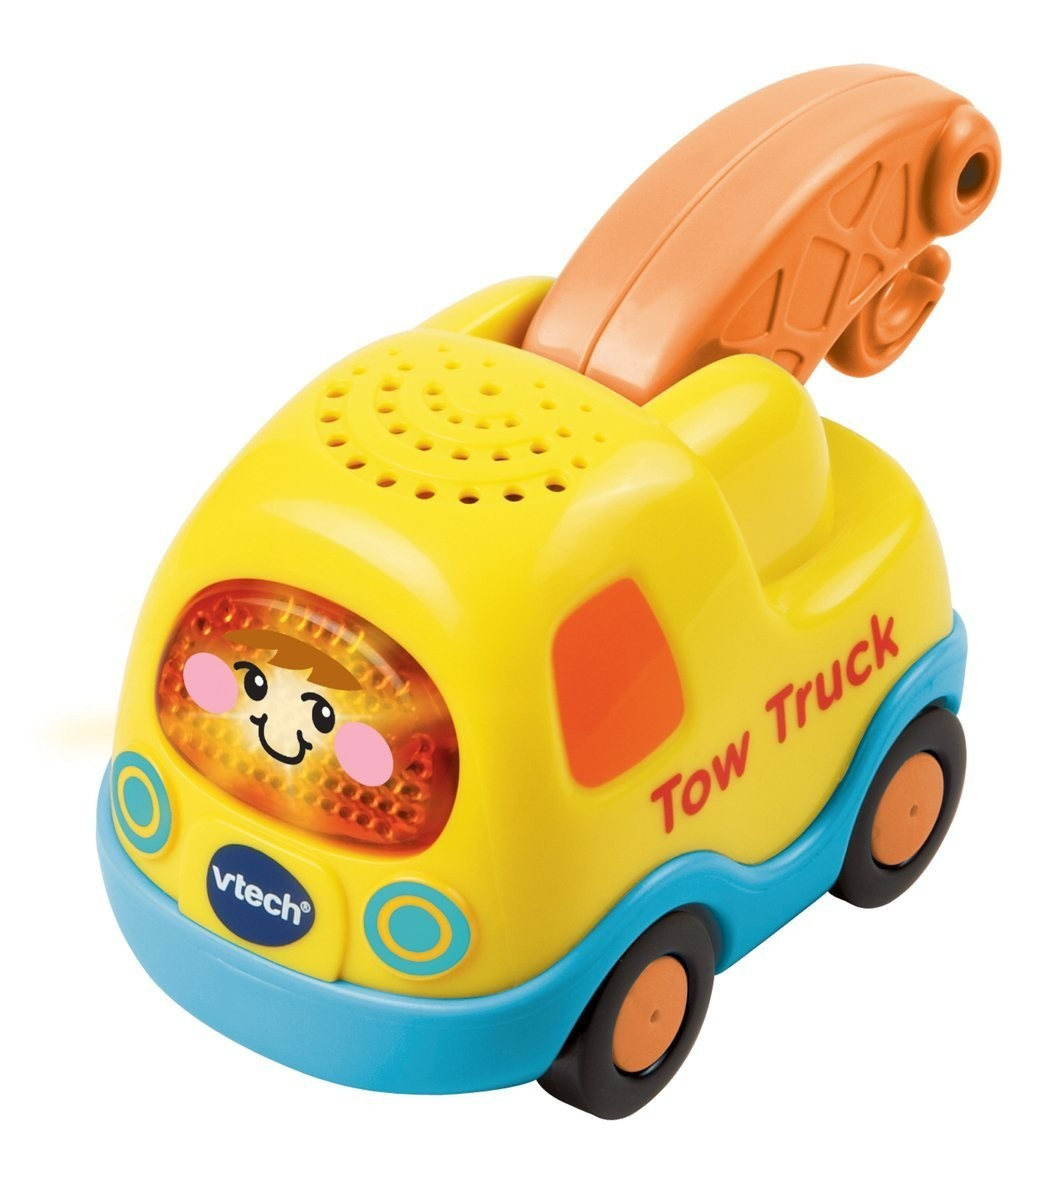 VTech: Toot Toot Drivers - Tow Truck image